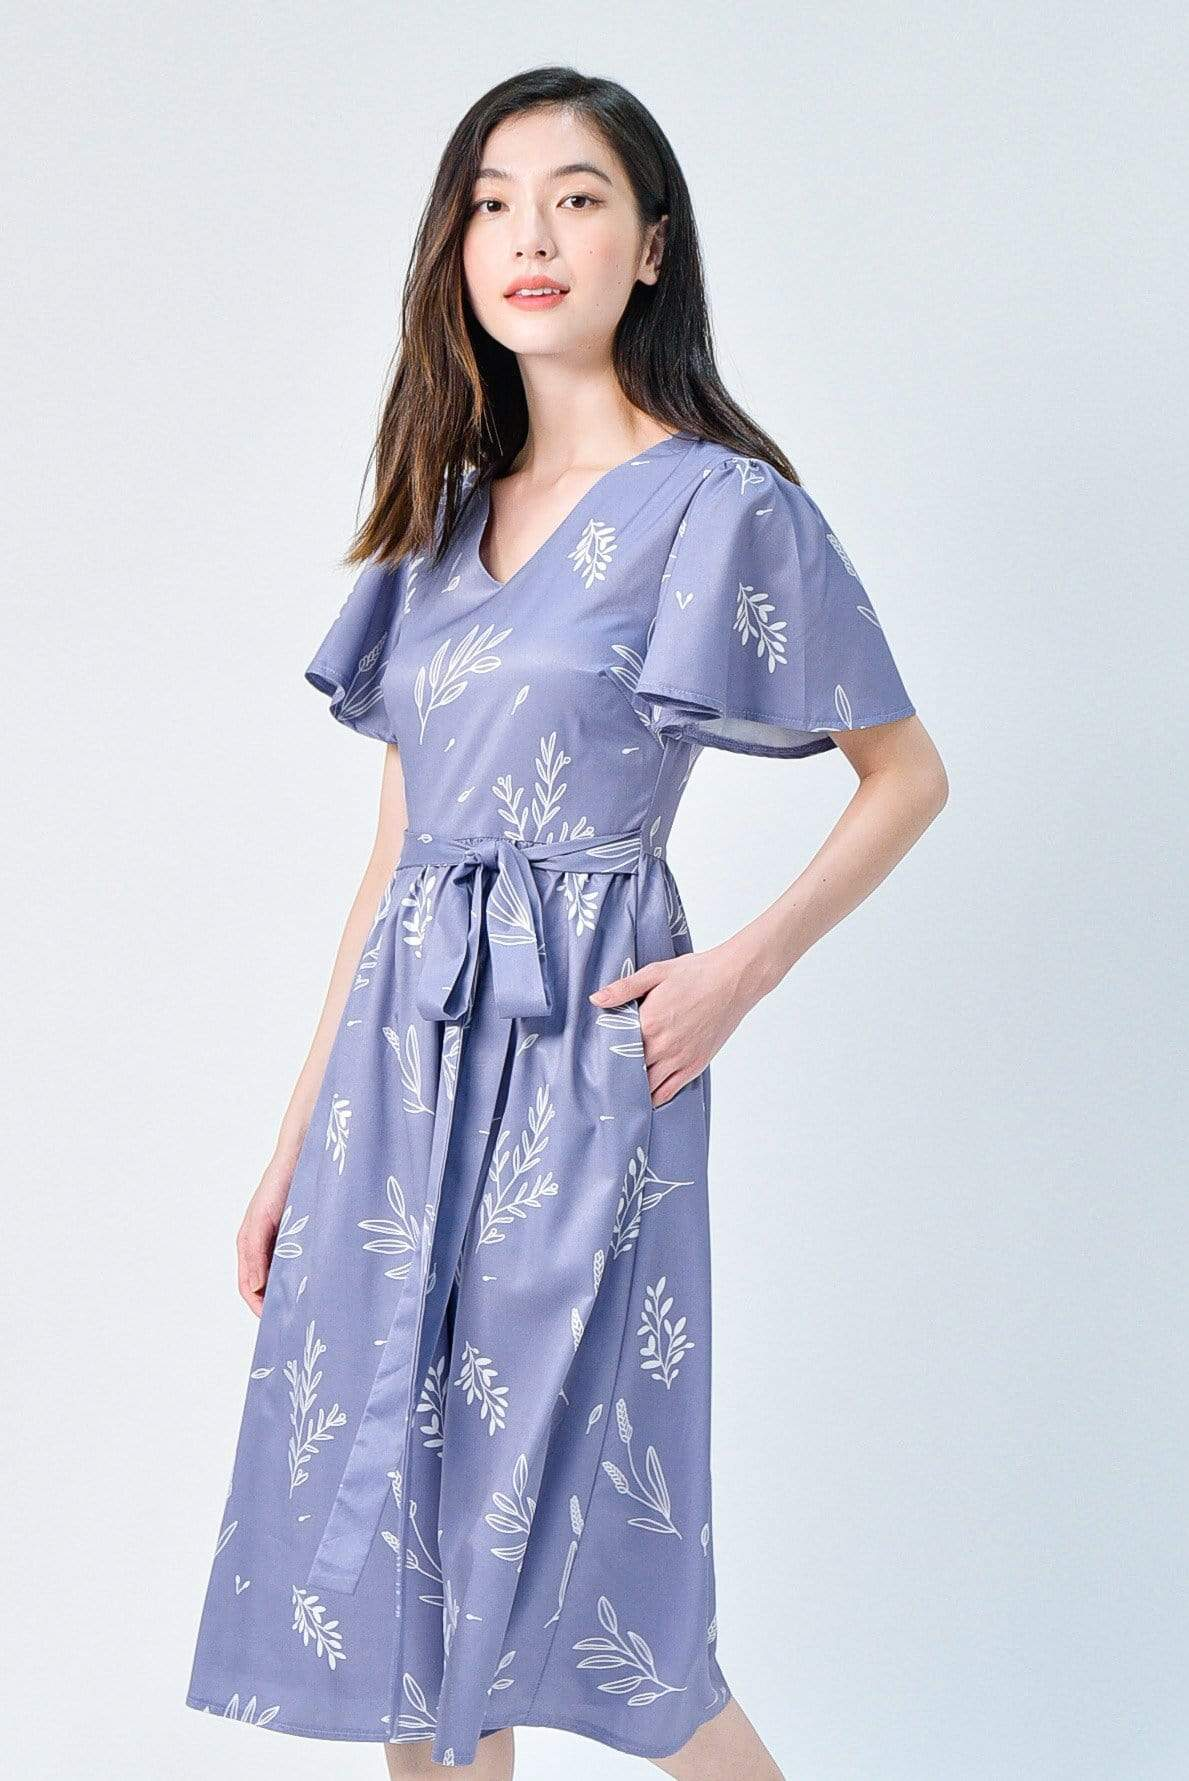 VIOLA LAVENDER FOLIAGE SLEEVED DRESS